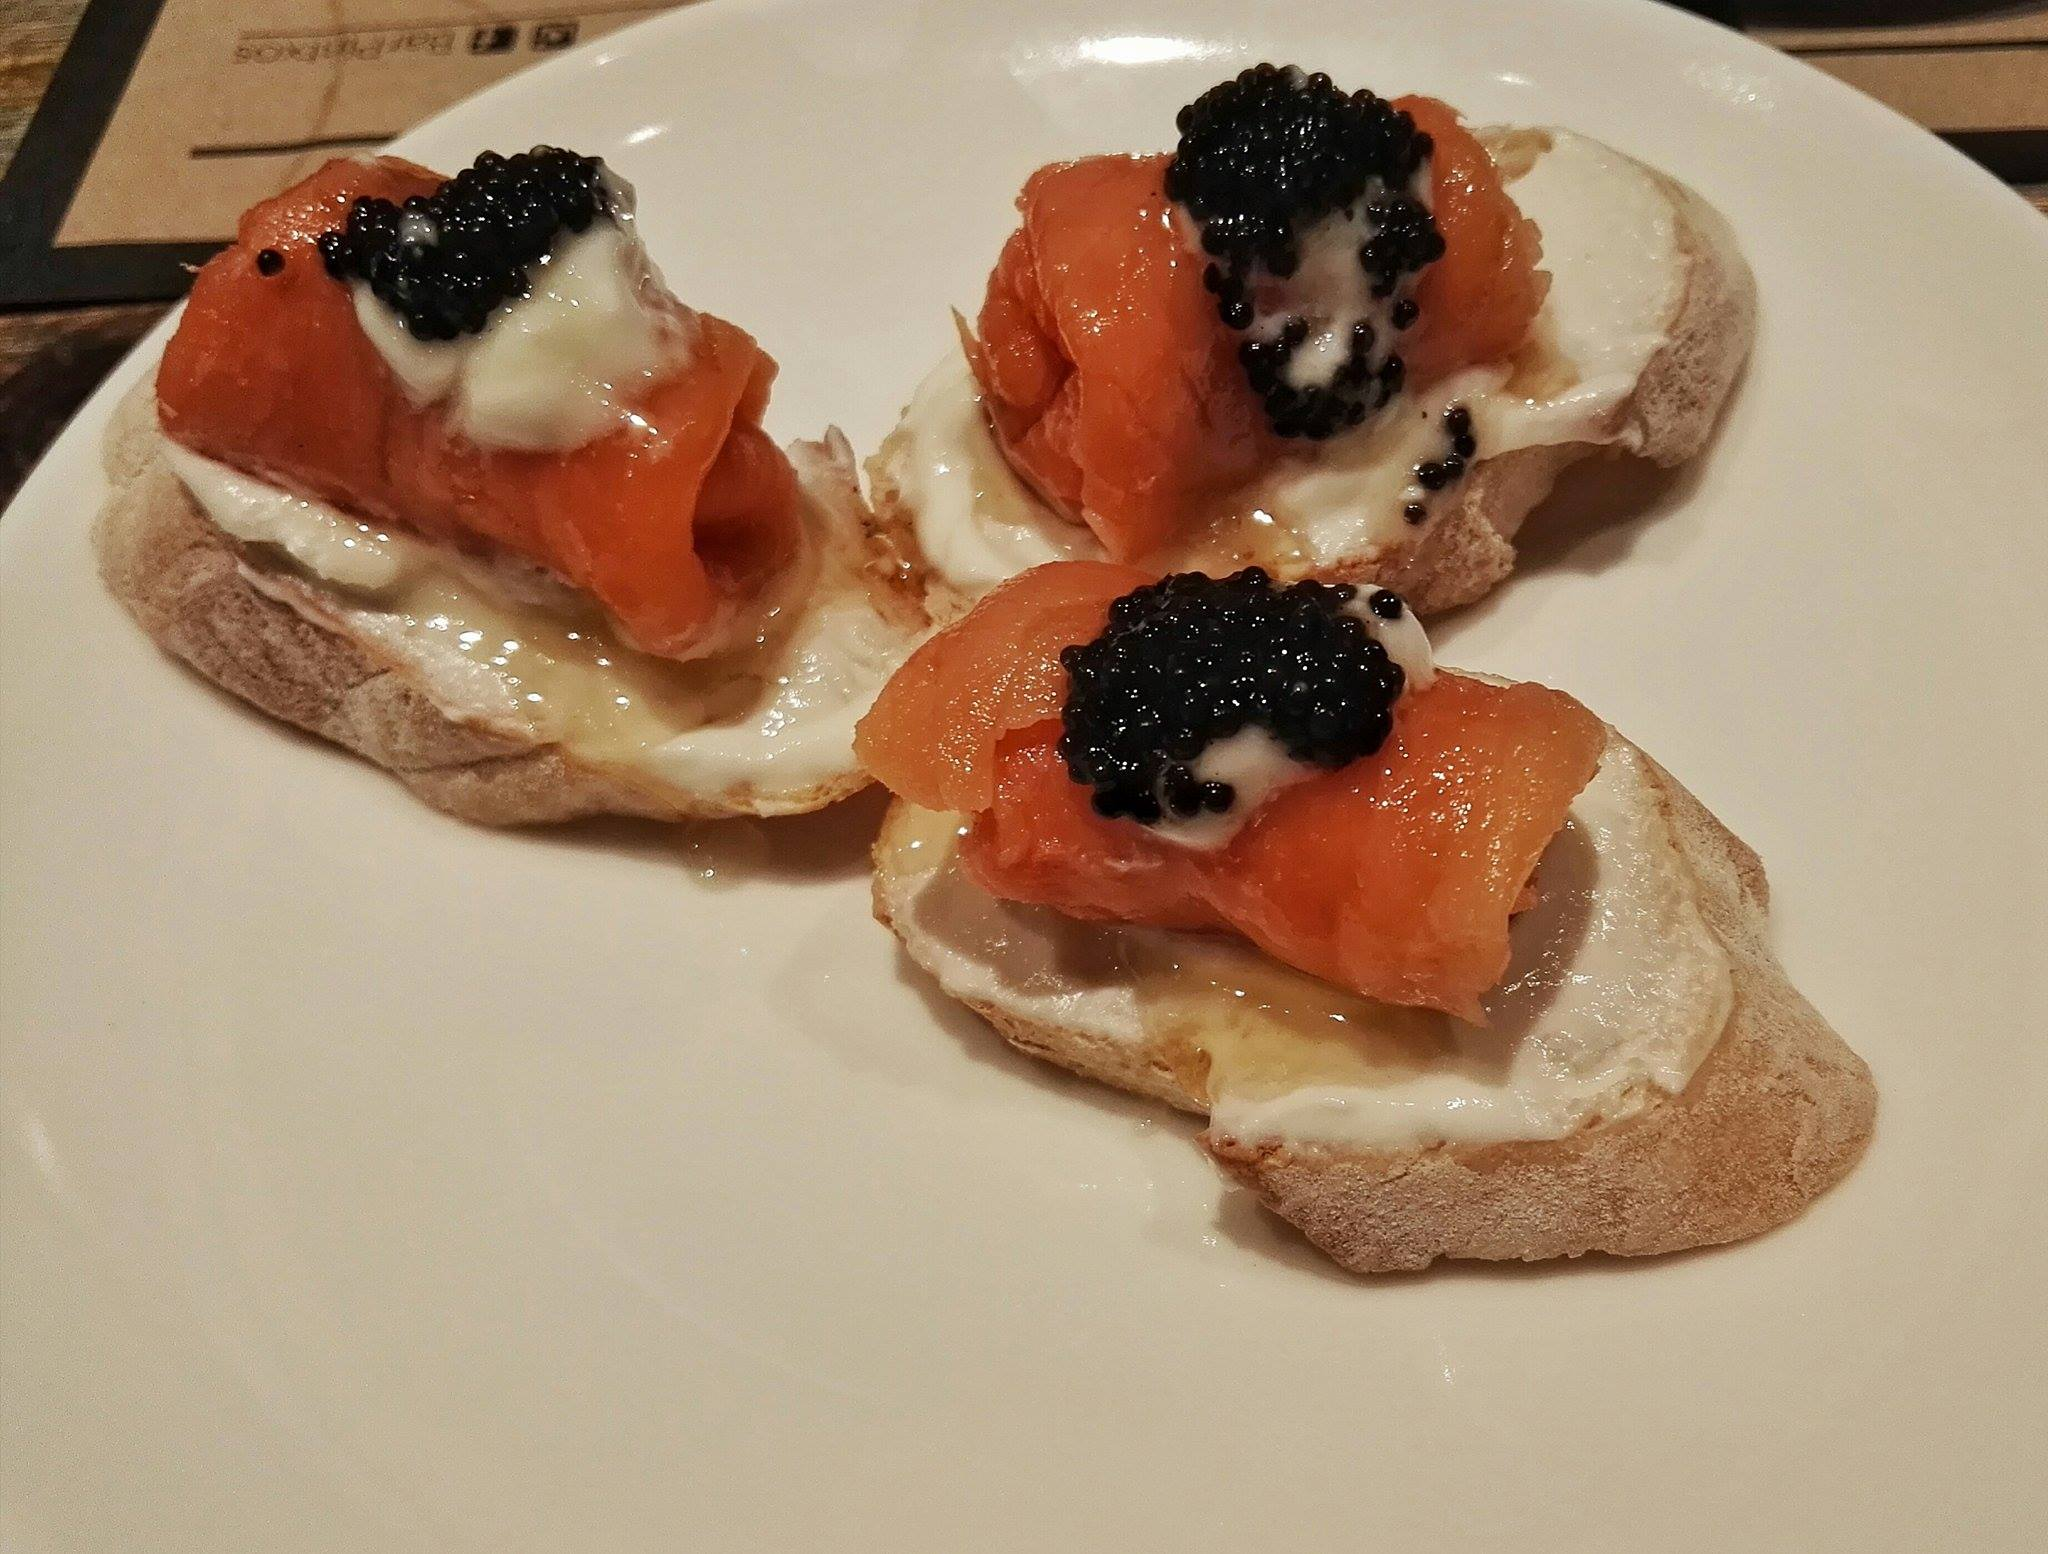 salmon-goat-cheese-truffle-honey-caviar-pintxos-bar-pintxos-fort-bonifacio-fairways-tower-bgc